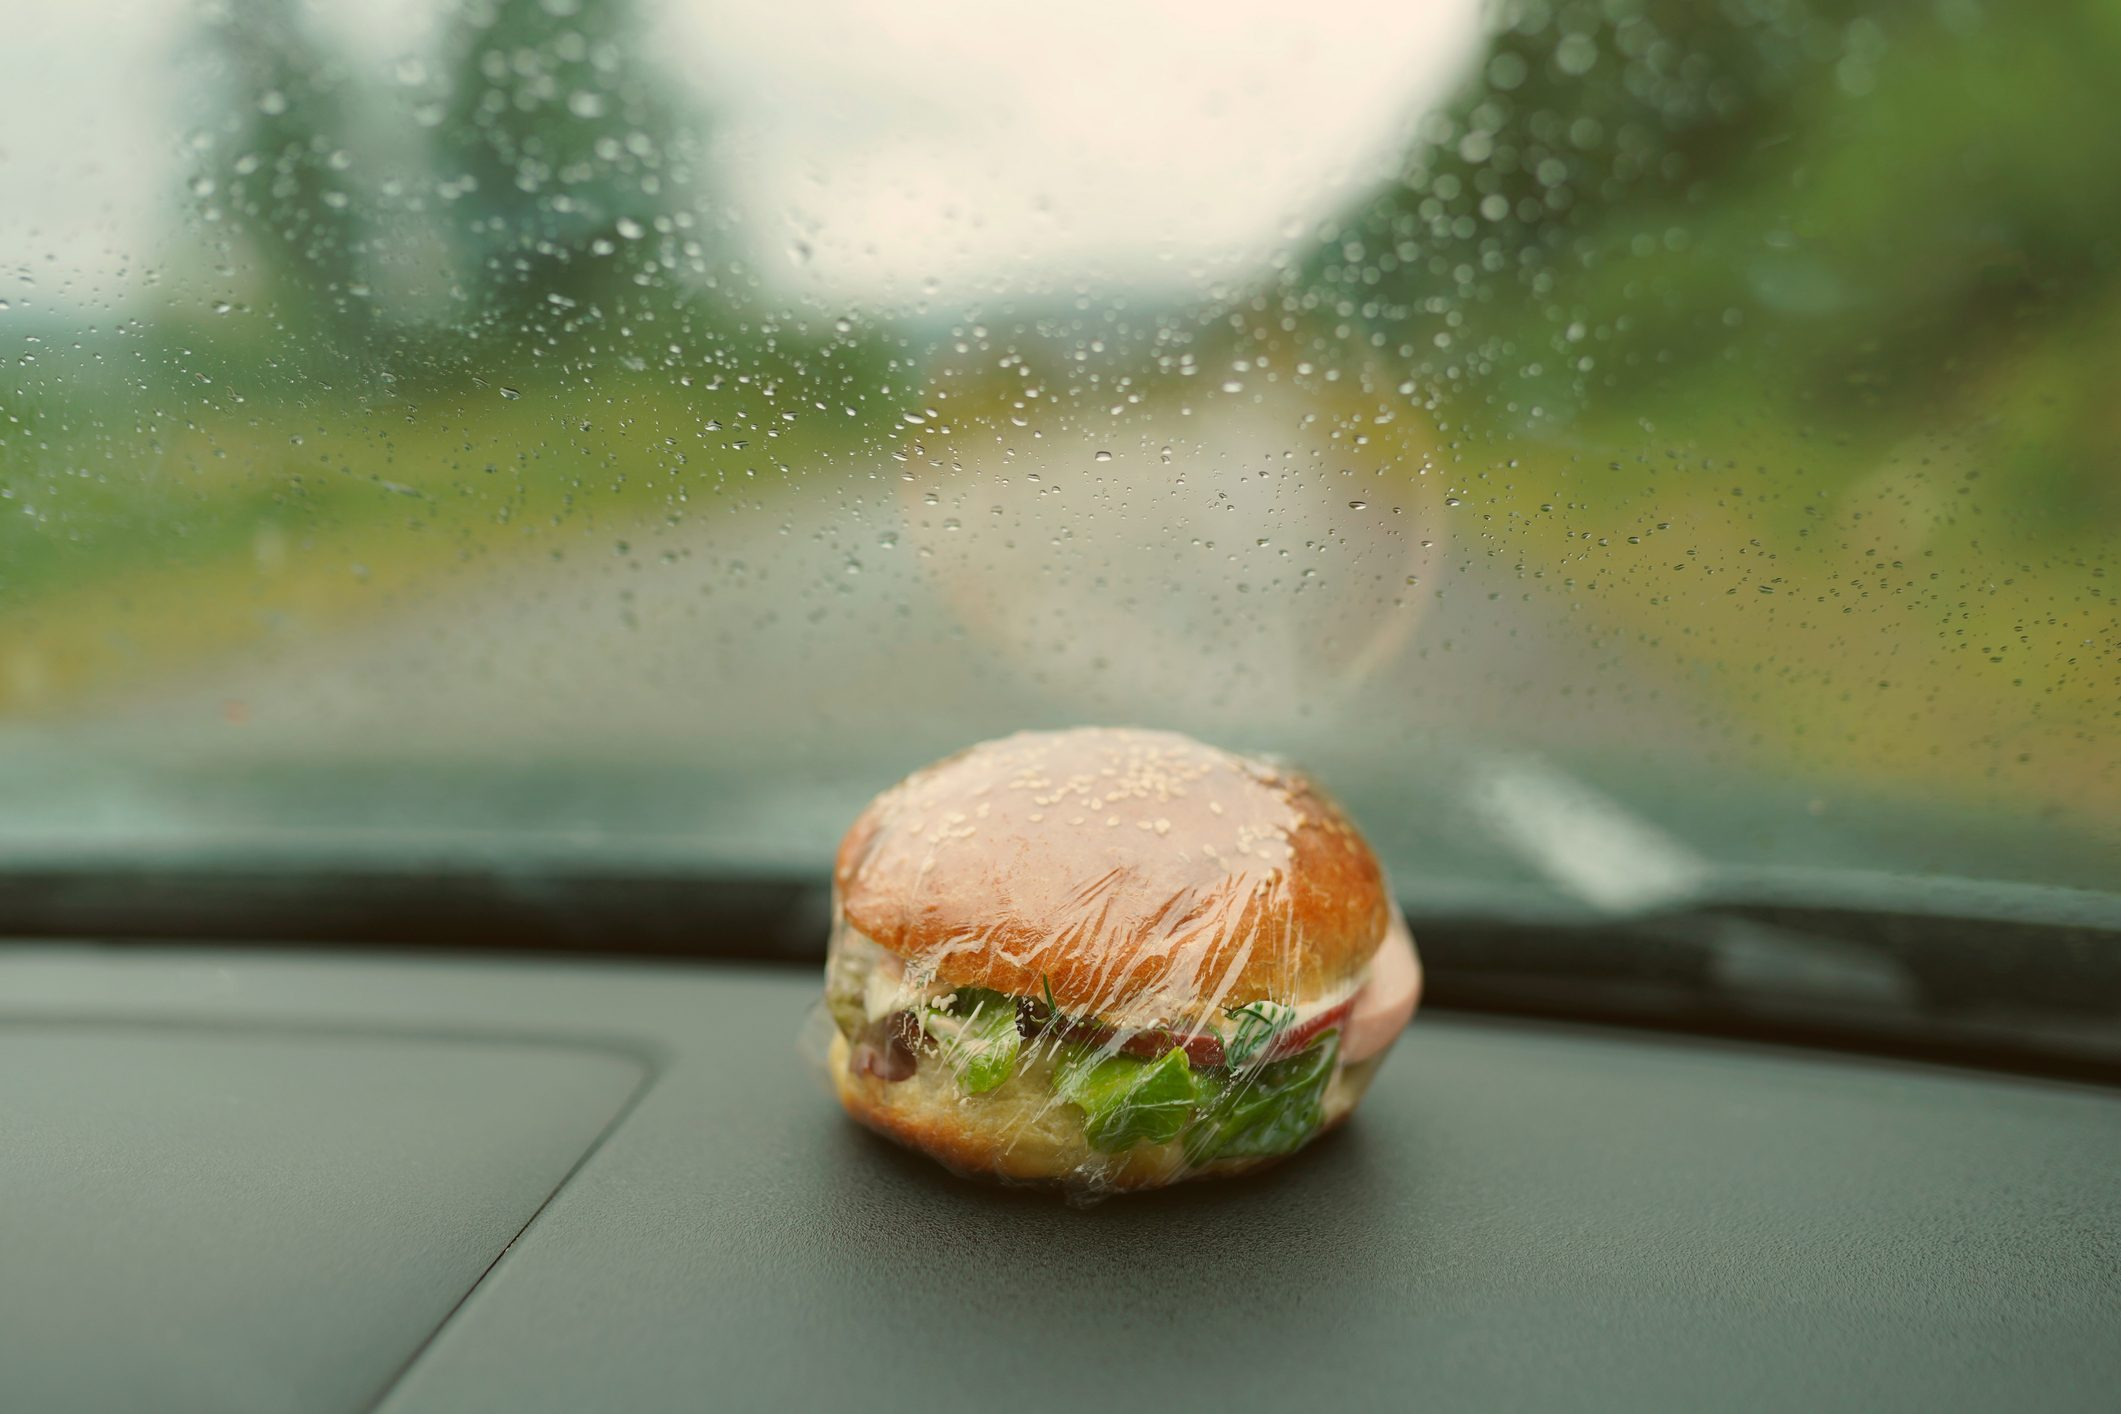 wrapped burger lies on the car dashboard